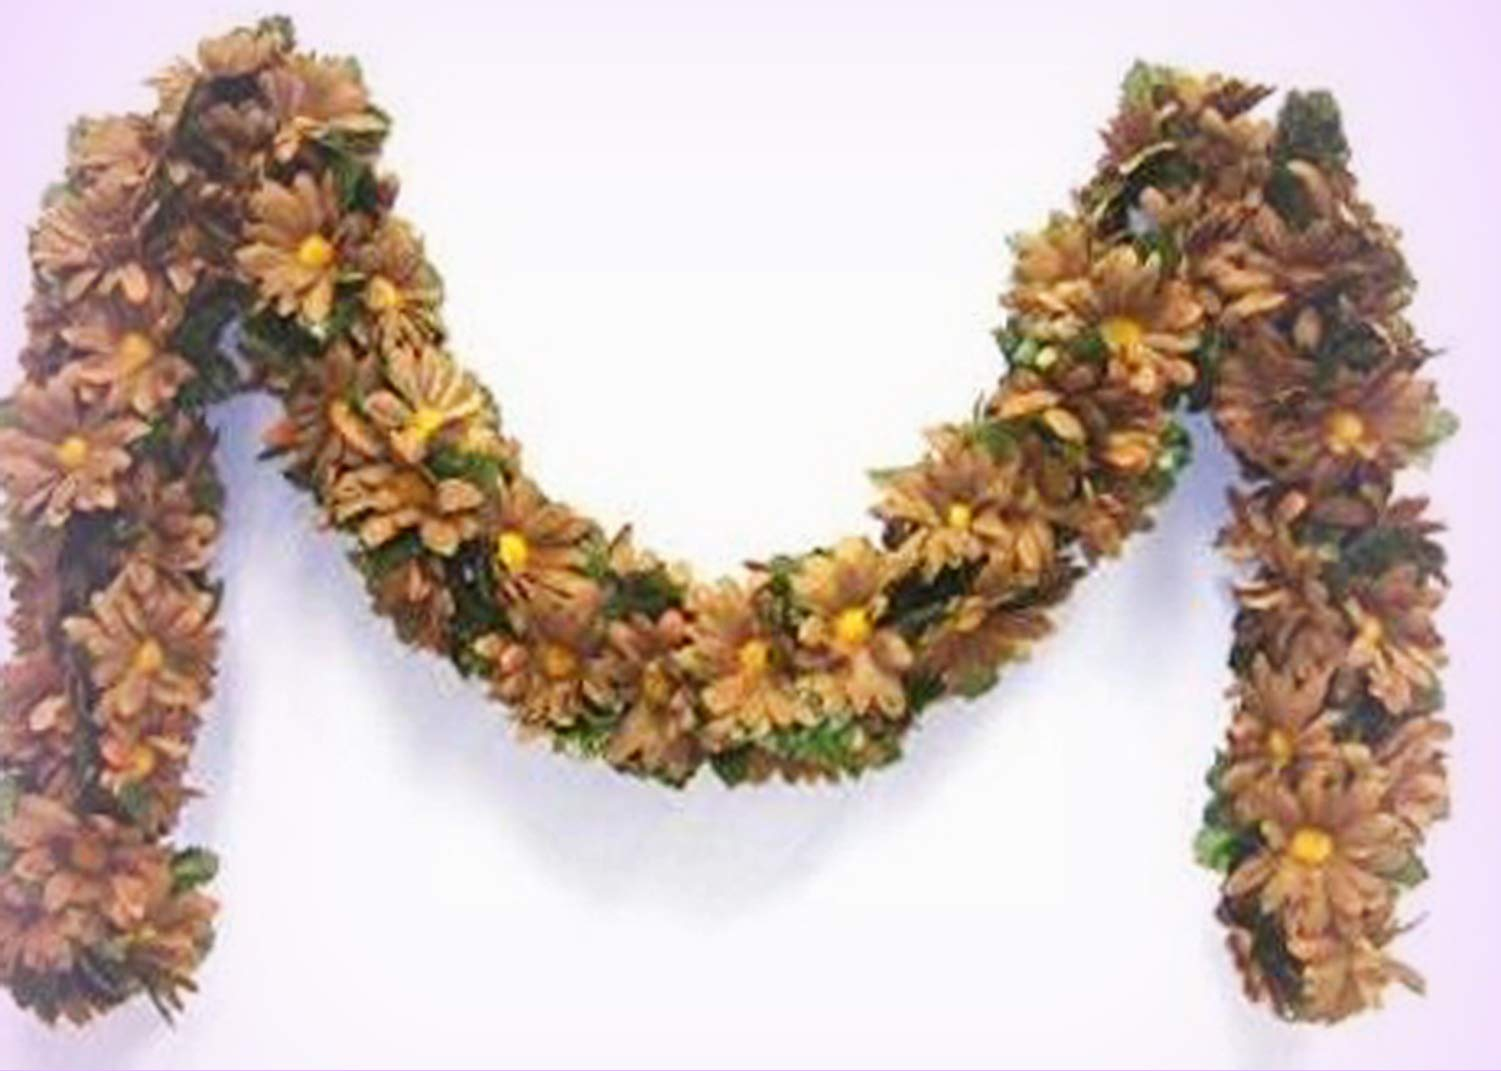 Inna-Wholesale-Art-Crafts-New-Brown-Daisy-Chain-Garland-Silk-Decorating-Flowers-Arch-Gazebo-Decor-Perfect-for-Any-Wedding-Special-Occasion-or-Home-Office-Dcor